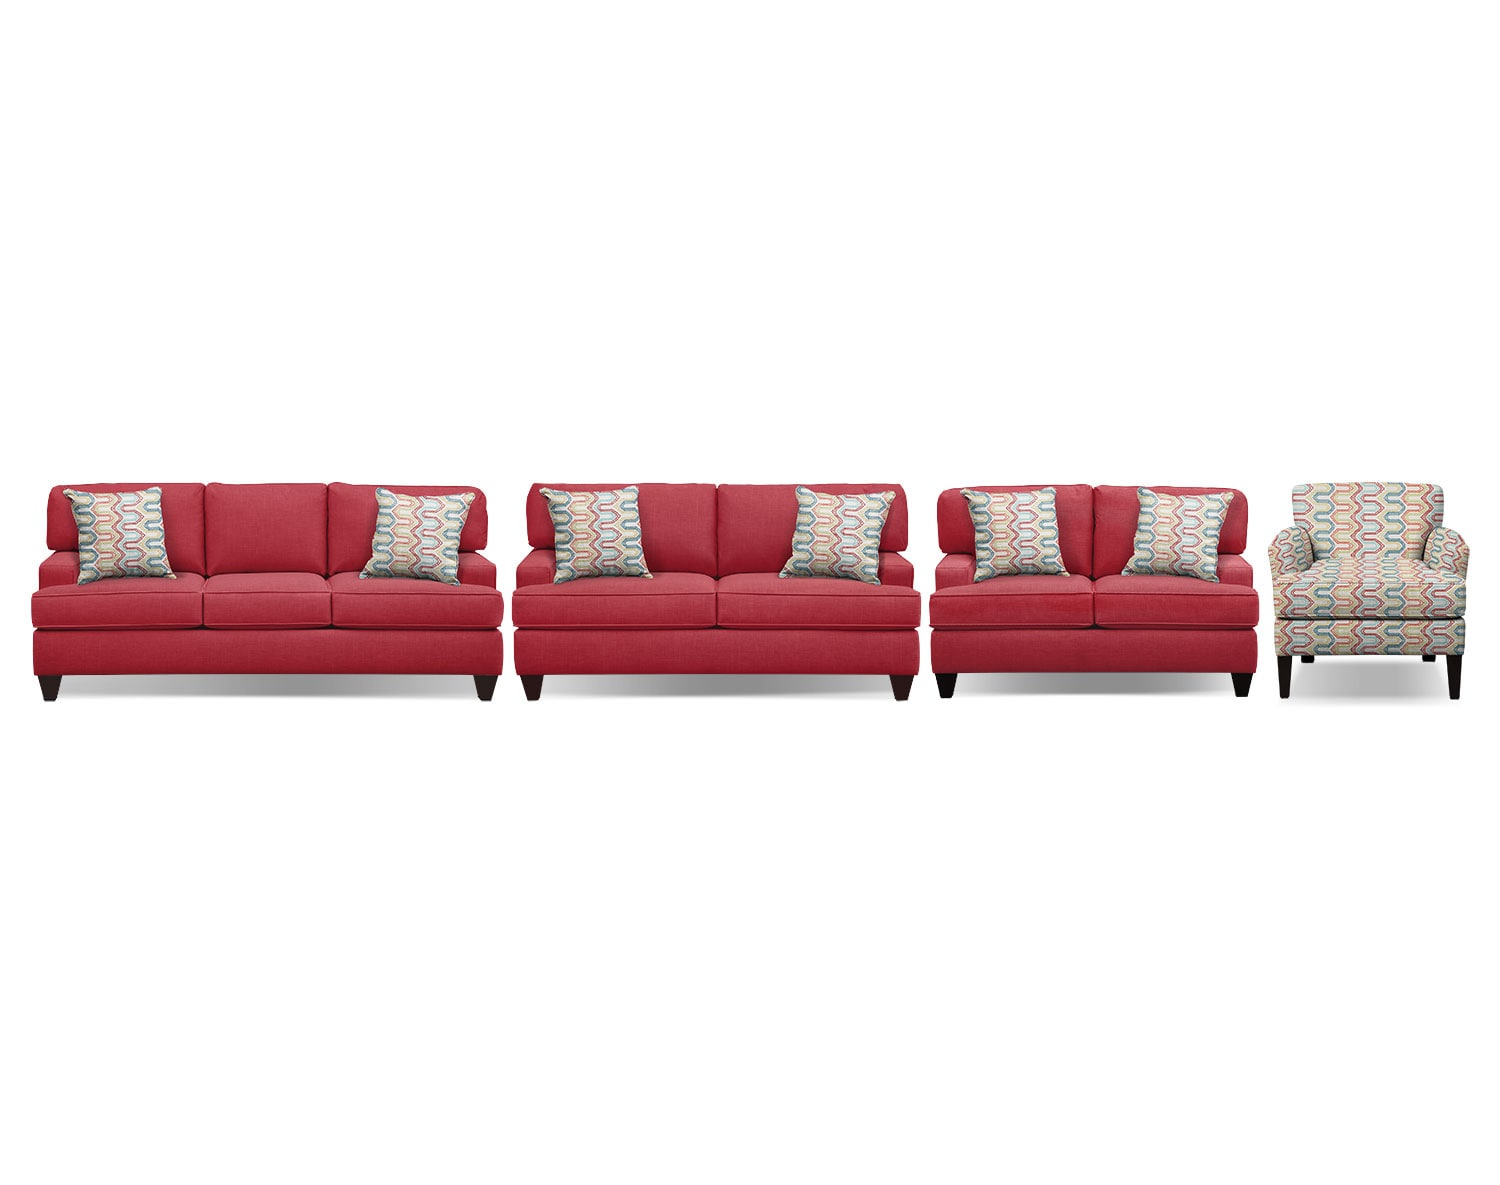 The Conner Red Living Room Collection